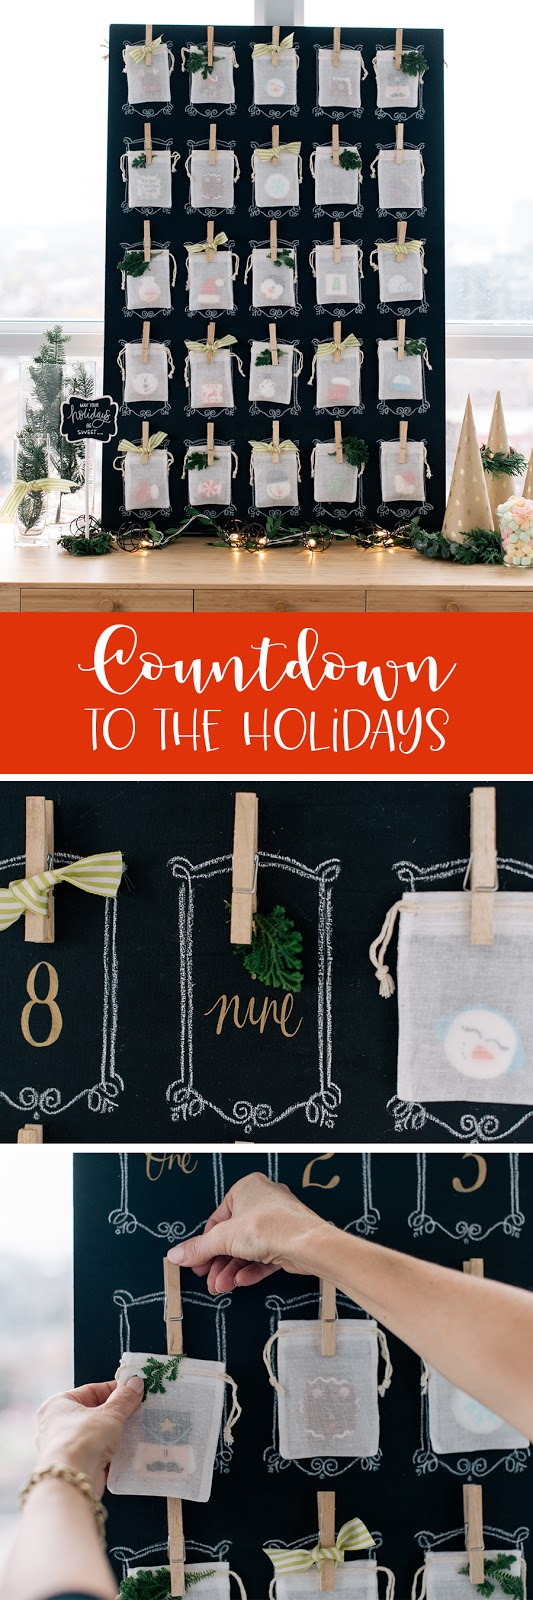 sweet countdown to the holiday idea using mini advent cookies and muslin bags | creativebag.com